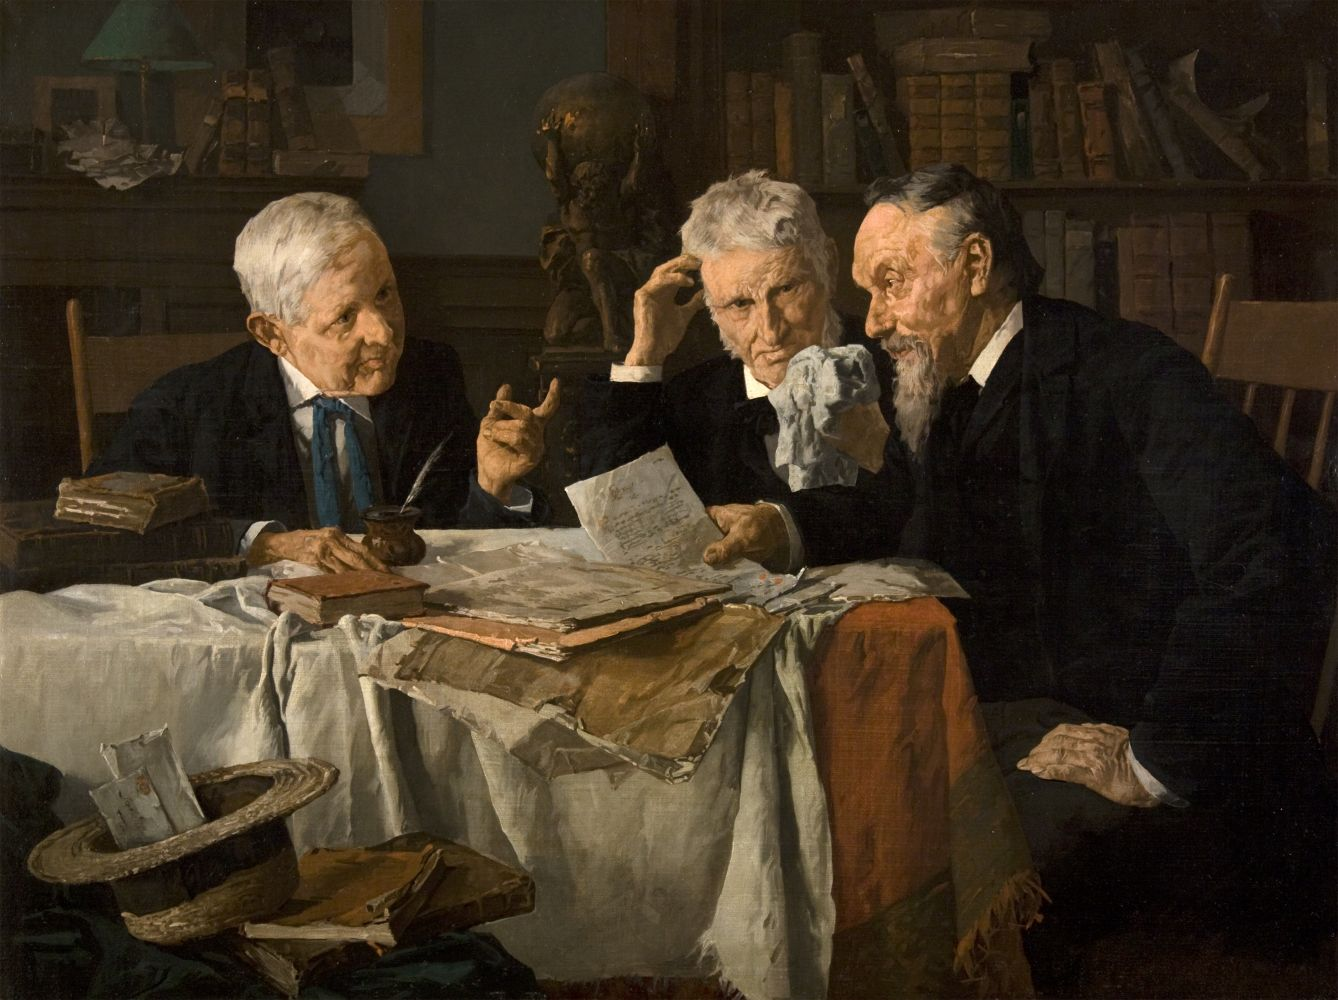 Louis Charles Moeller (1855–1930), A Discussion, c. 1890, oil on canvas, 18 x 24 in., signed indistinctly lower right: Louis Moeller N. A.